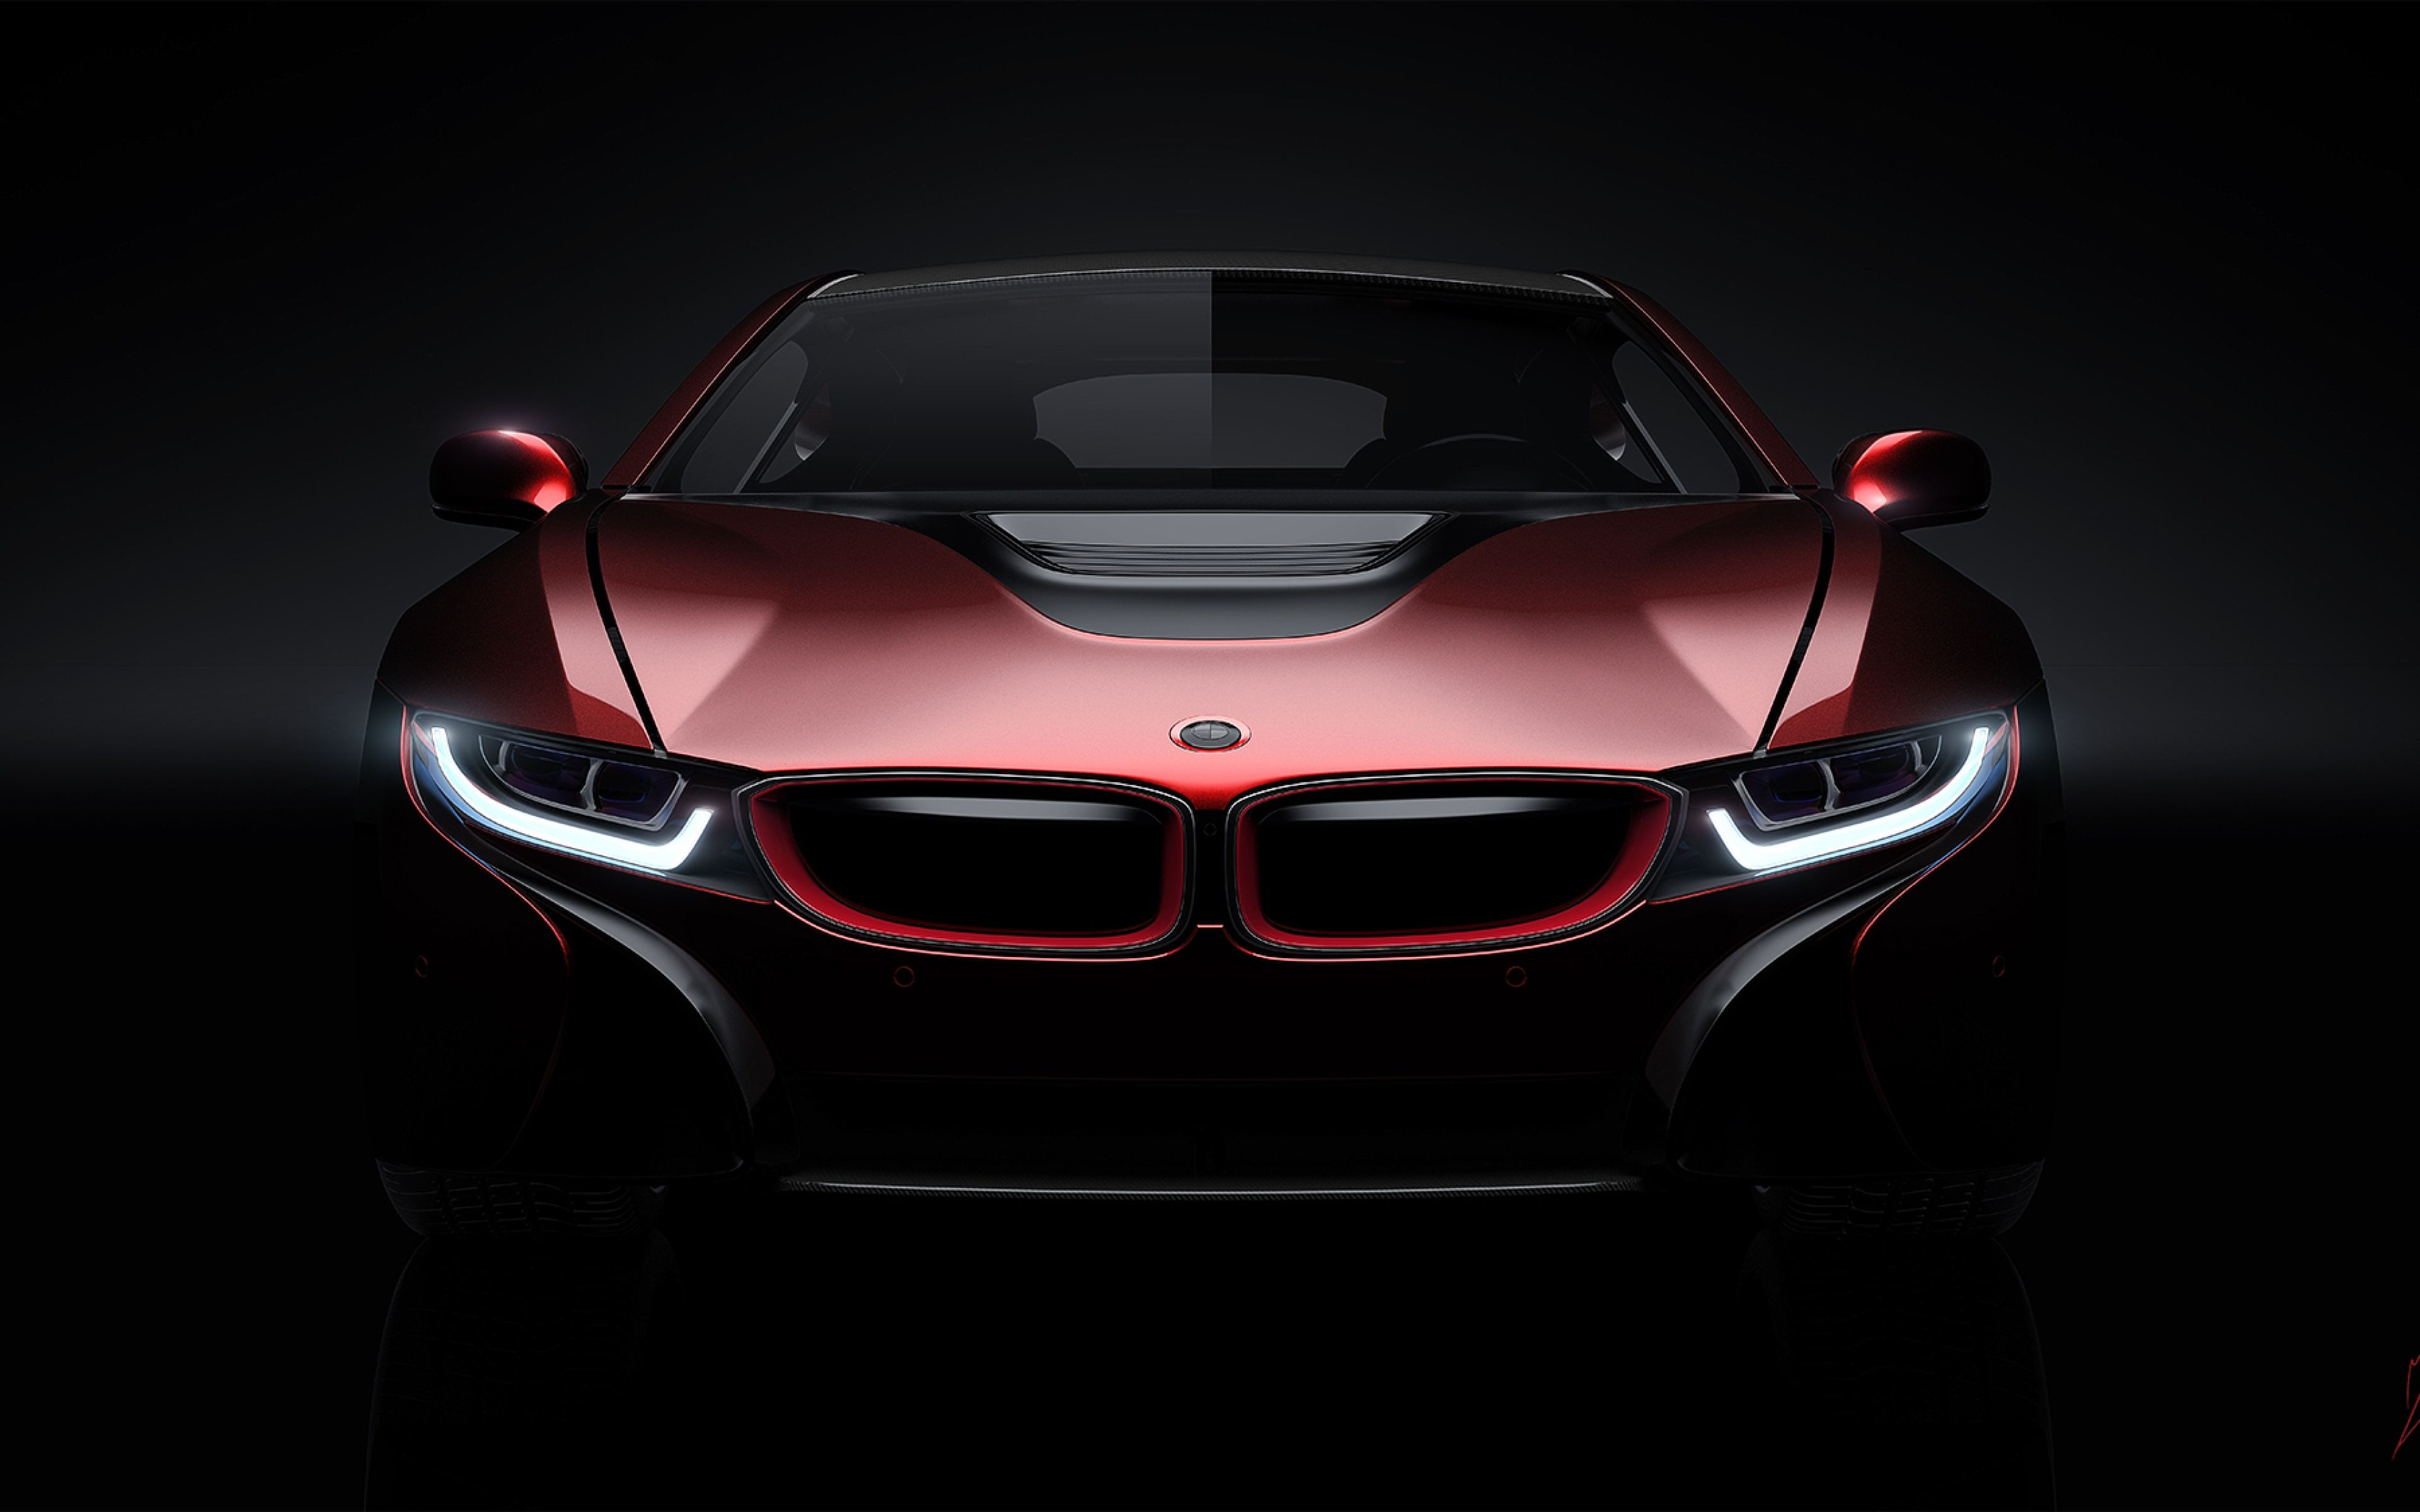 hight resolution of bmw black i8 front download wallpaper 3840x2400 bmw i8 concept front view ultra hd 4k